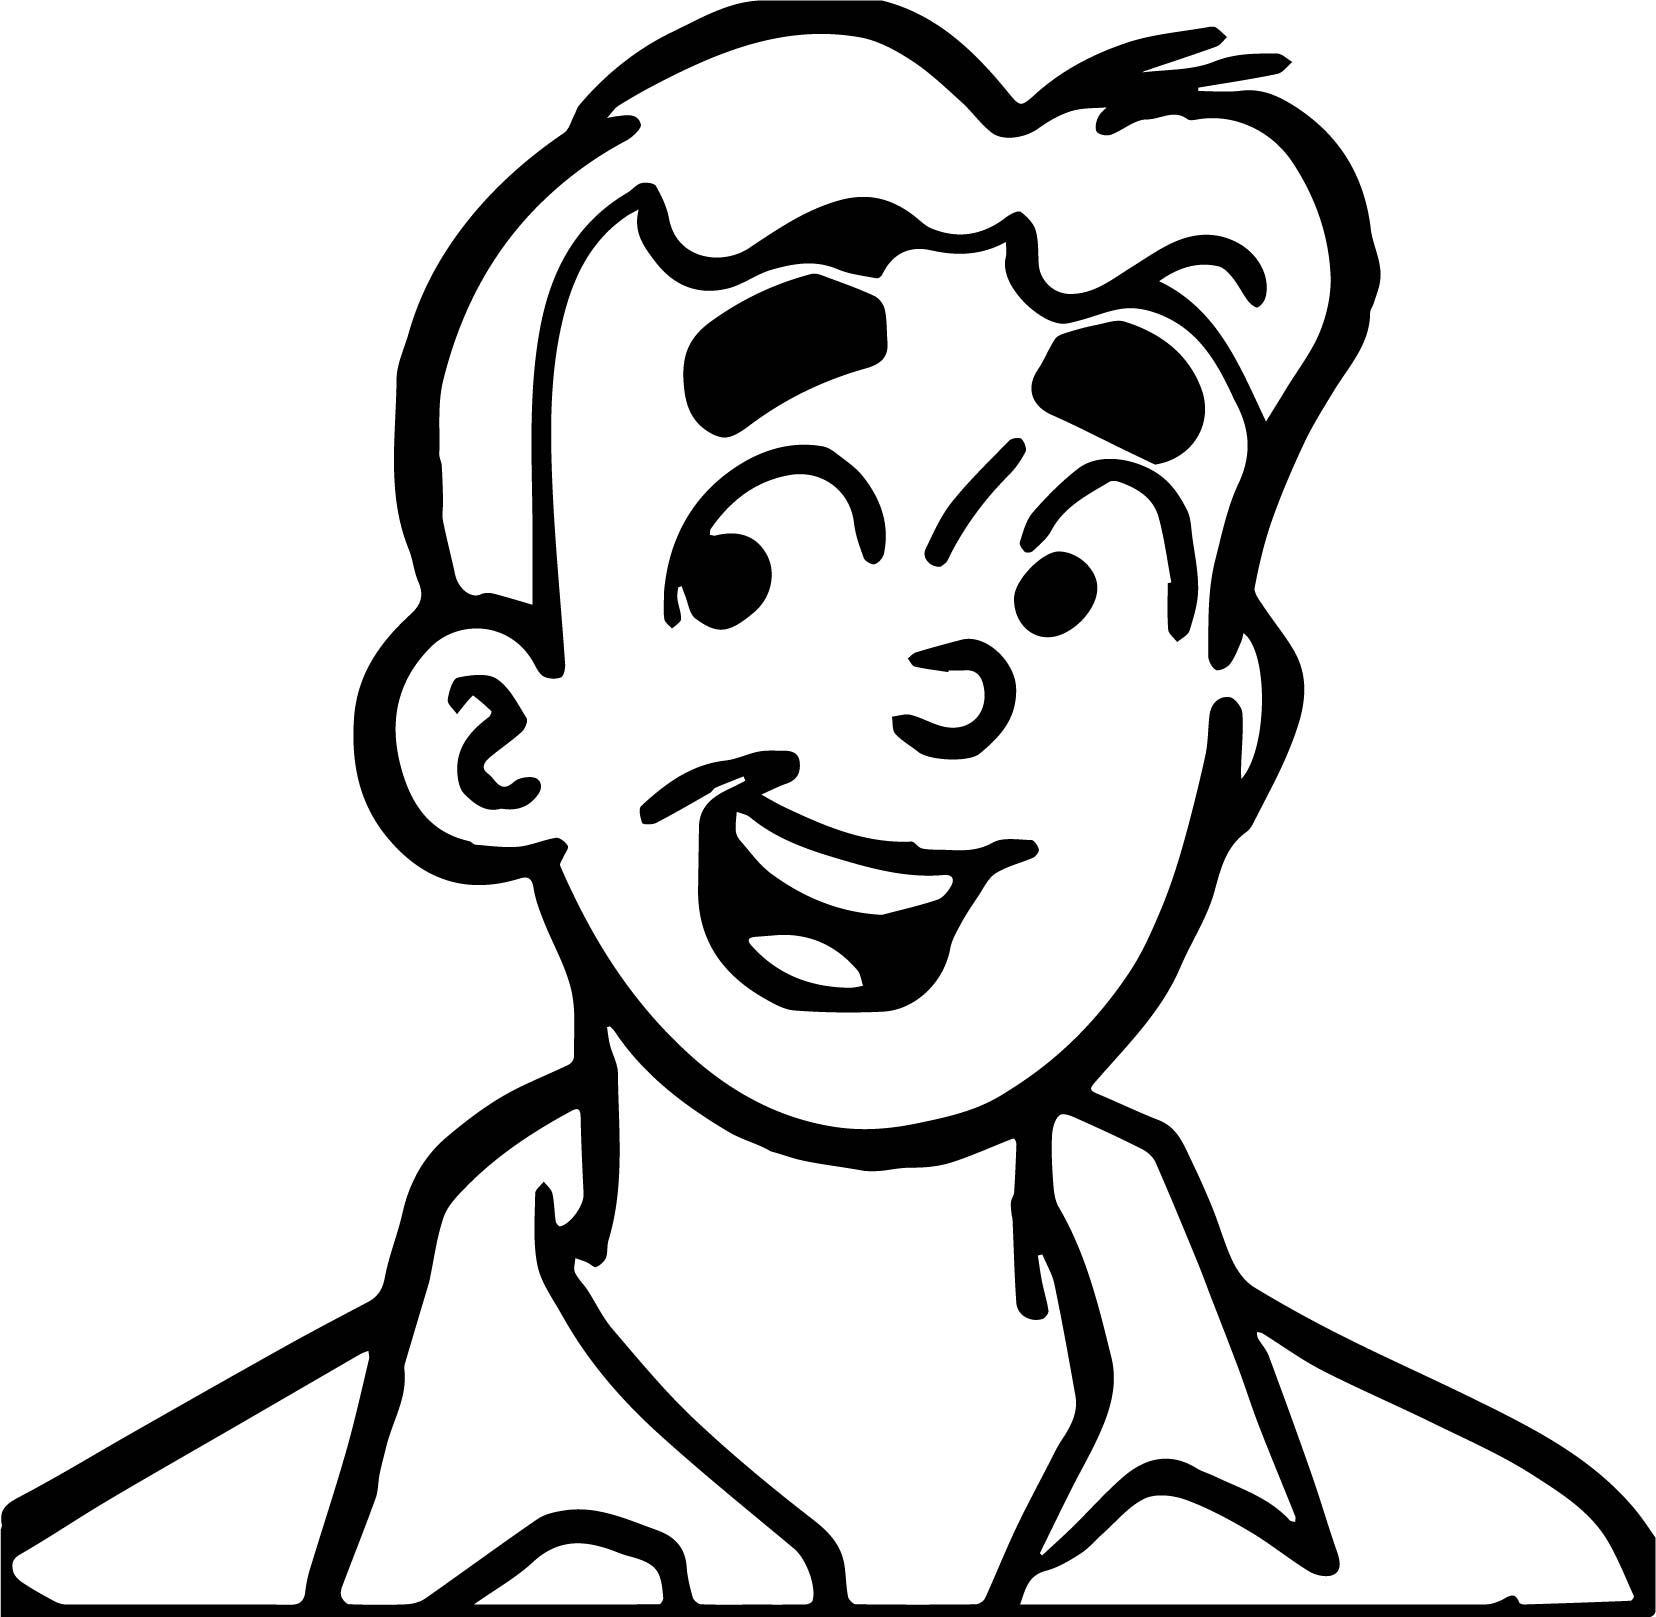 35+ Cool coloring pages for boys information